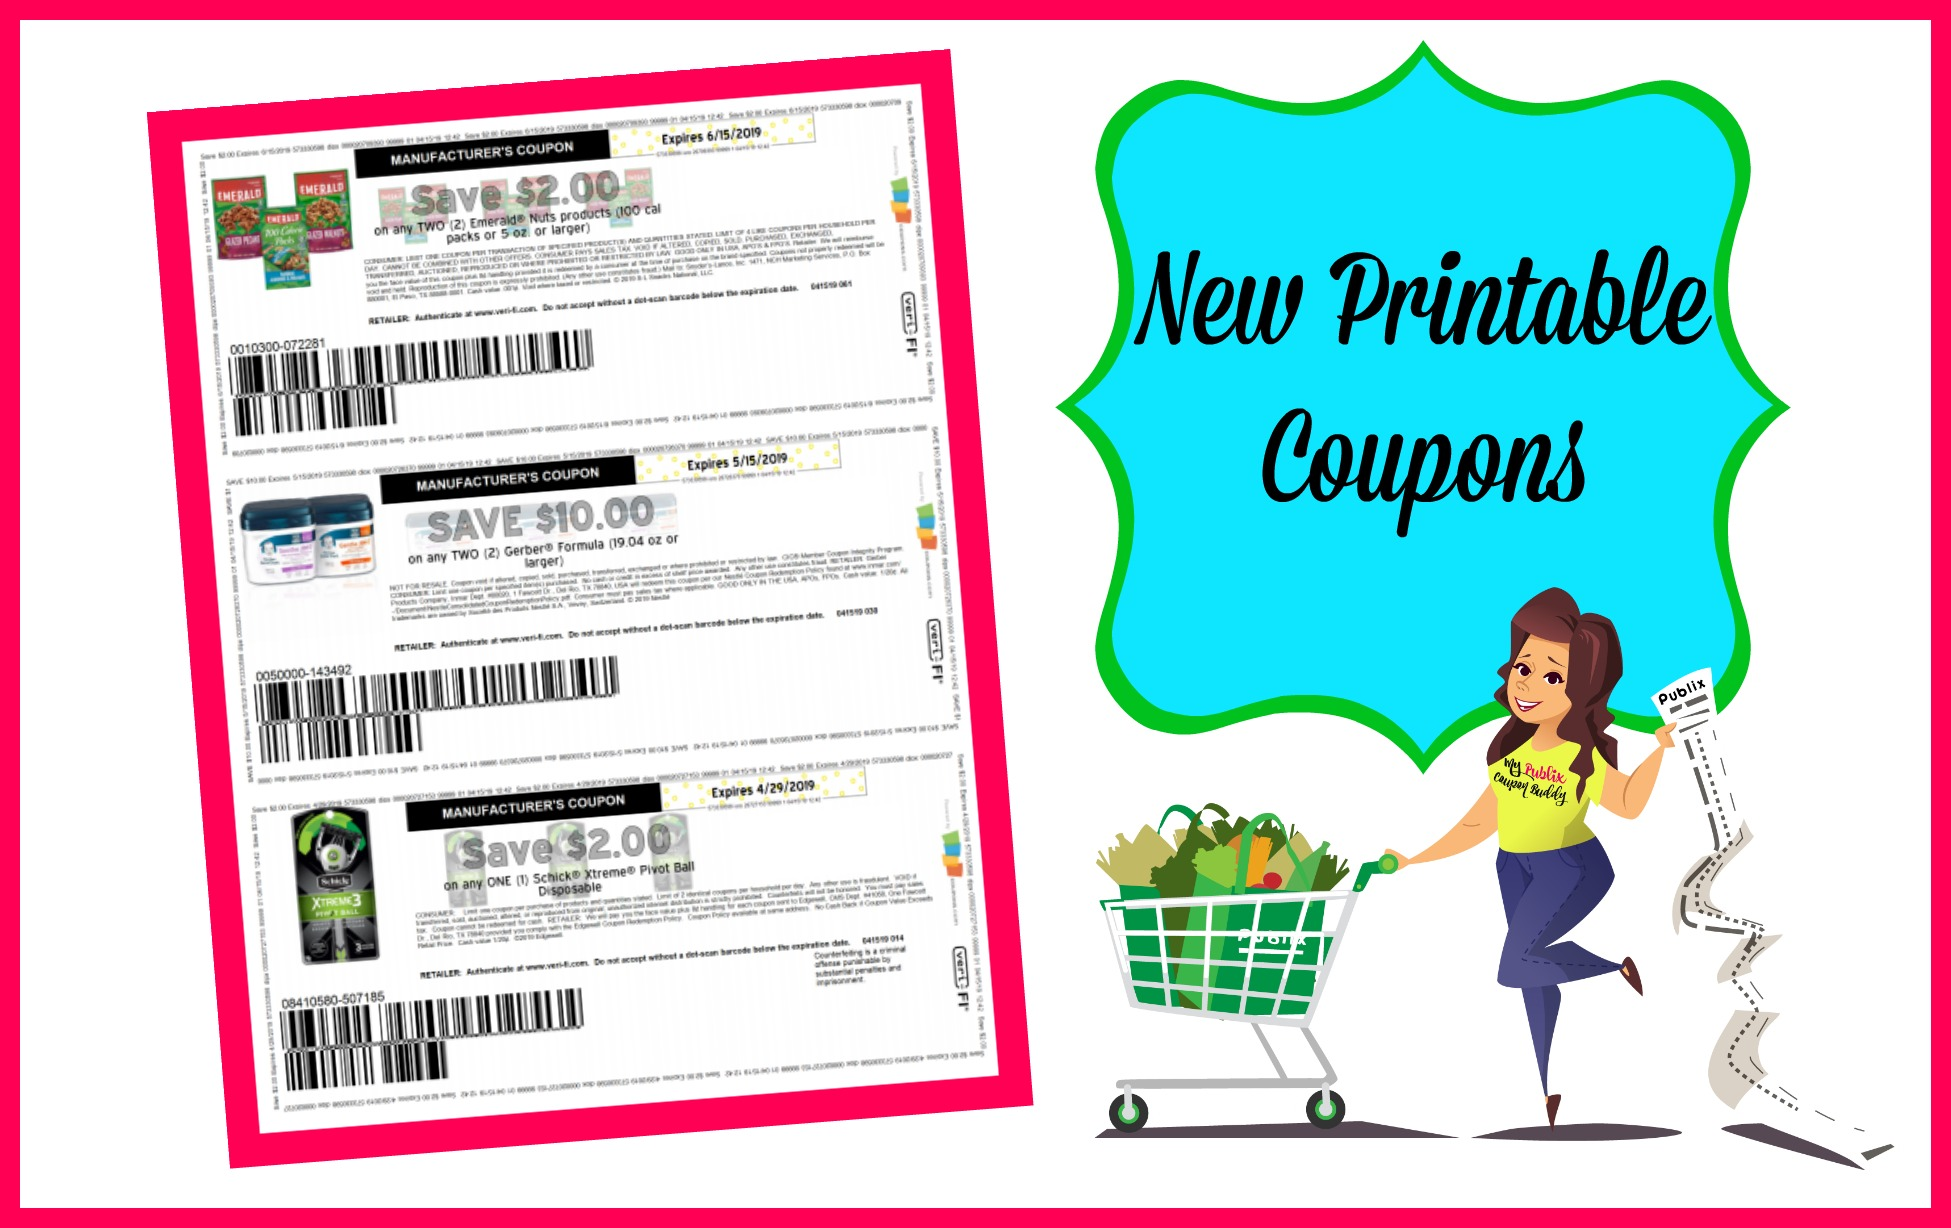 photograph about Gerber Printable Coupons identify Refreshing Printable Discount coupons ~ Gerber, Emerald and even further! My